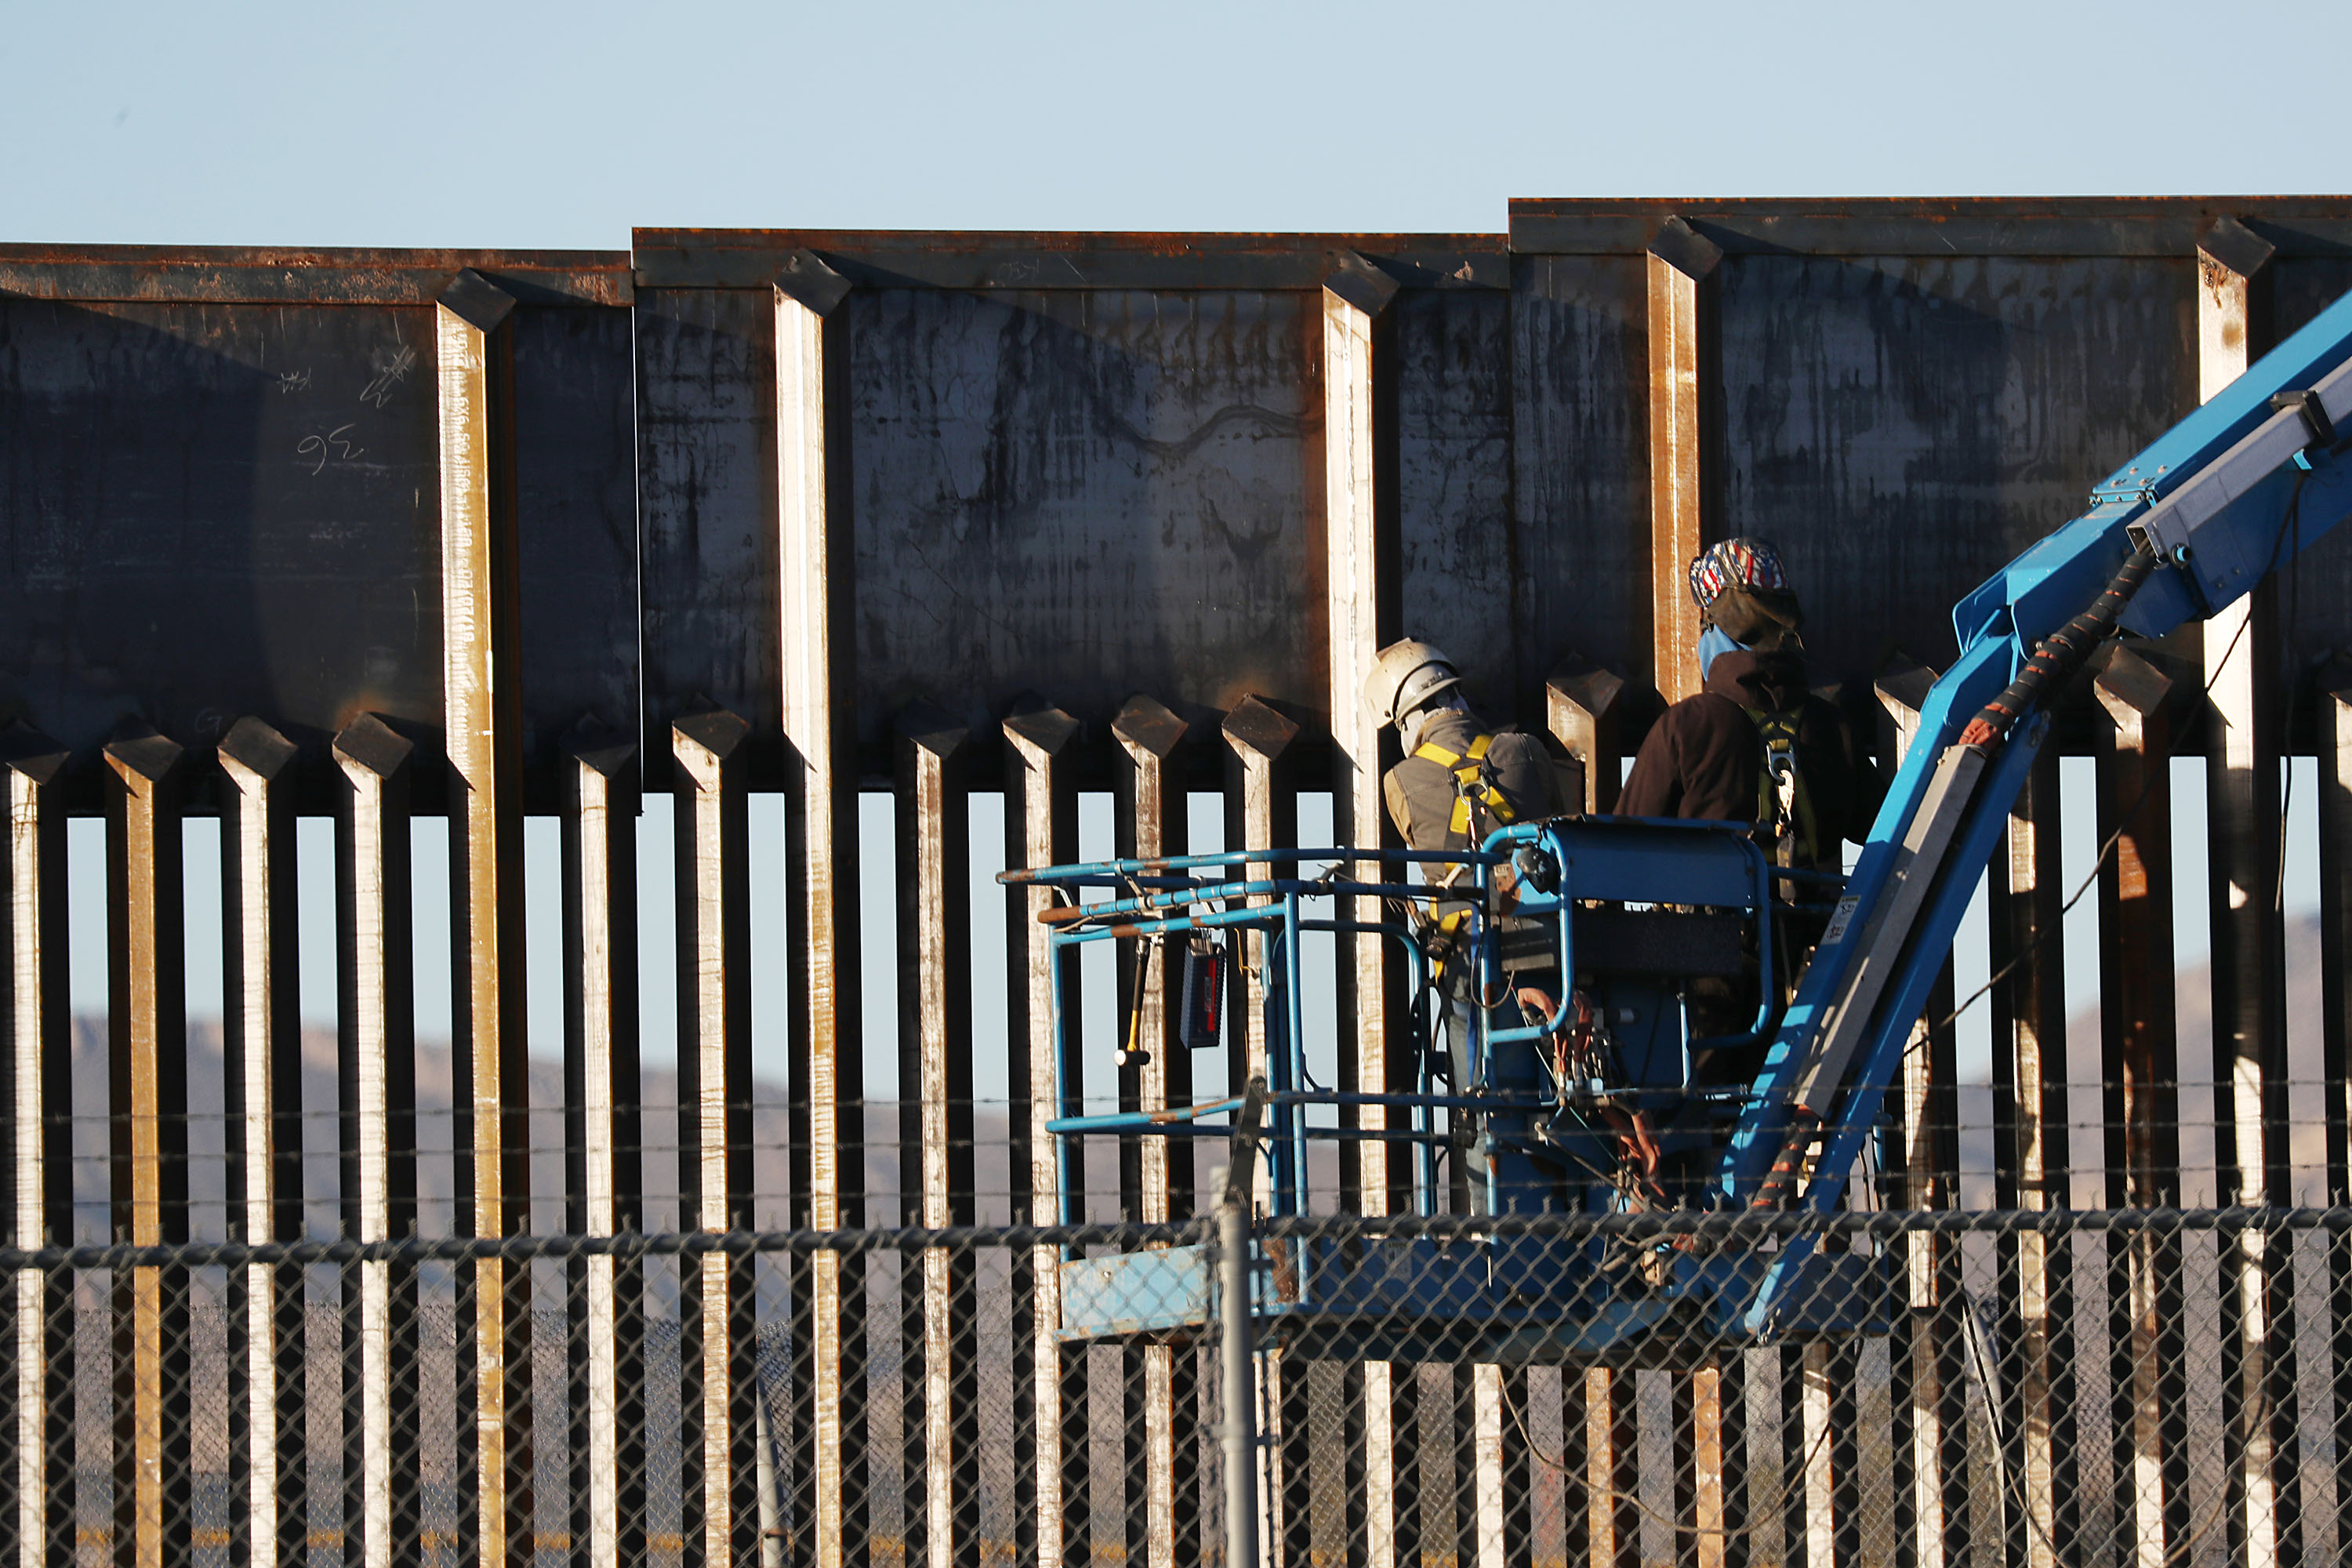 EL PASO, TEXAS - FEBRUARY 12: People work on the U.S./ Mexican border wall on February 12, 2019 in El Paso, Texas. U.S. President Donald Trump visited the border city yesterday as he continues to campaign for more wall to be built along the border. Democrats in Congress are asking for other additional border security measures. (Photo by Joe Raedle/Getty Images)